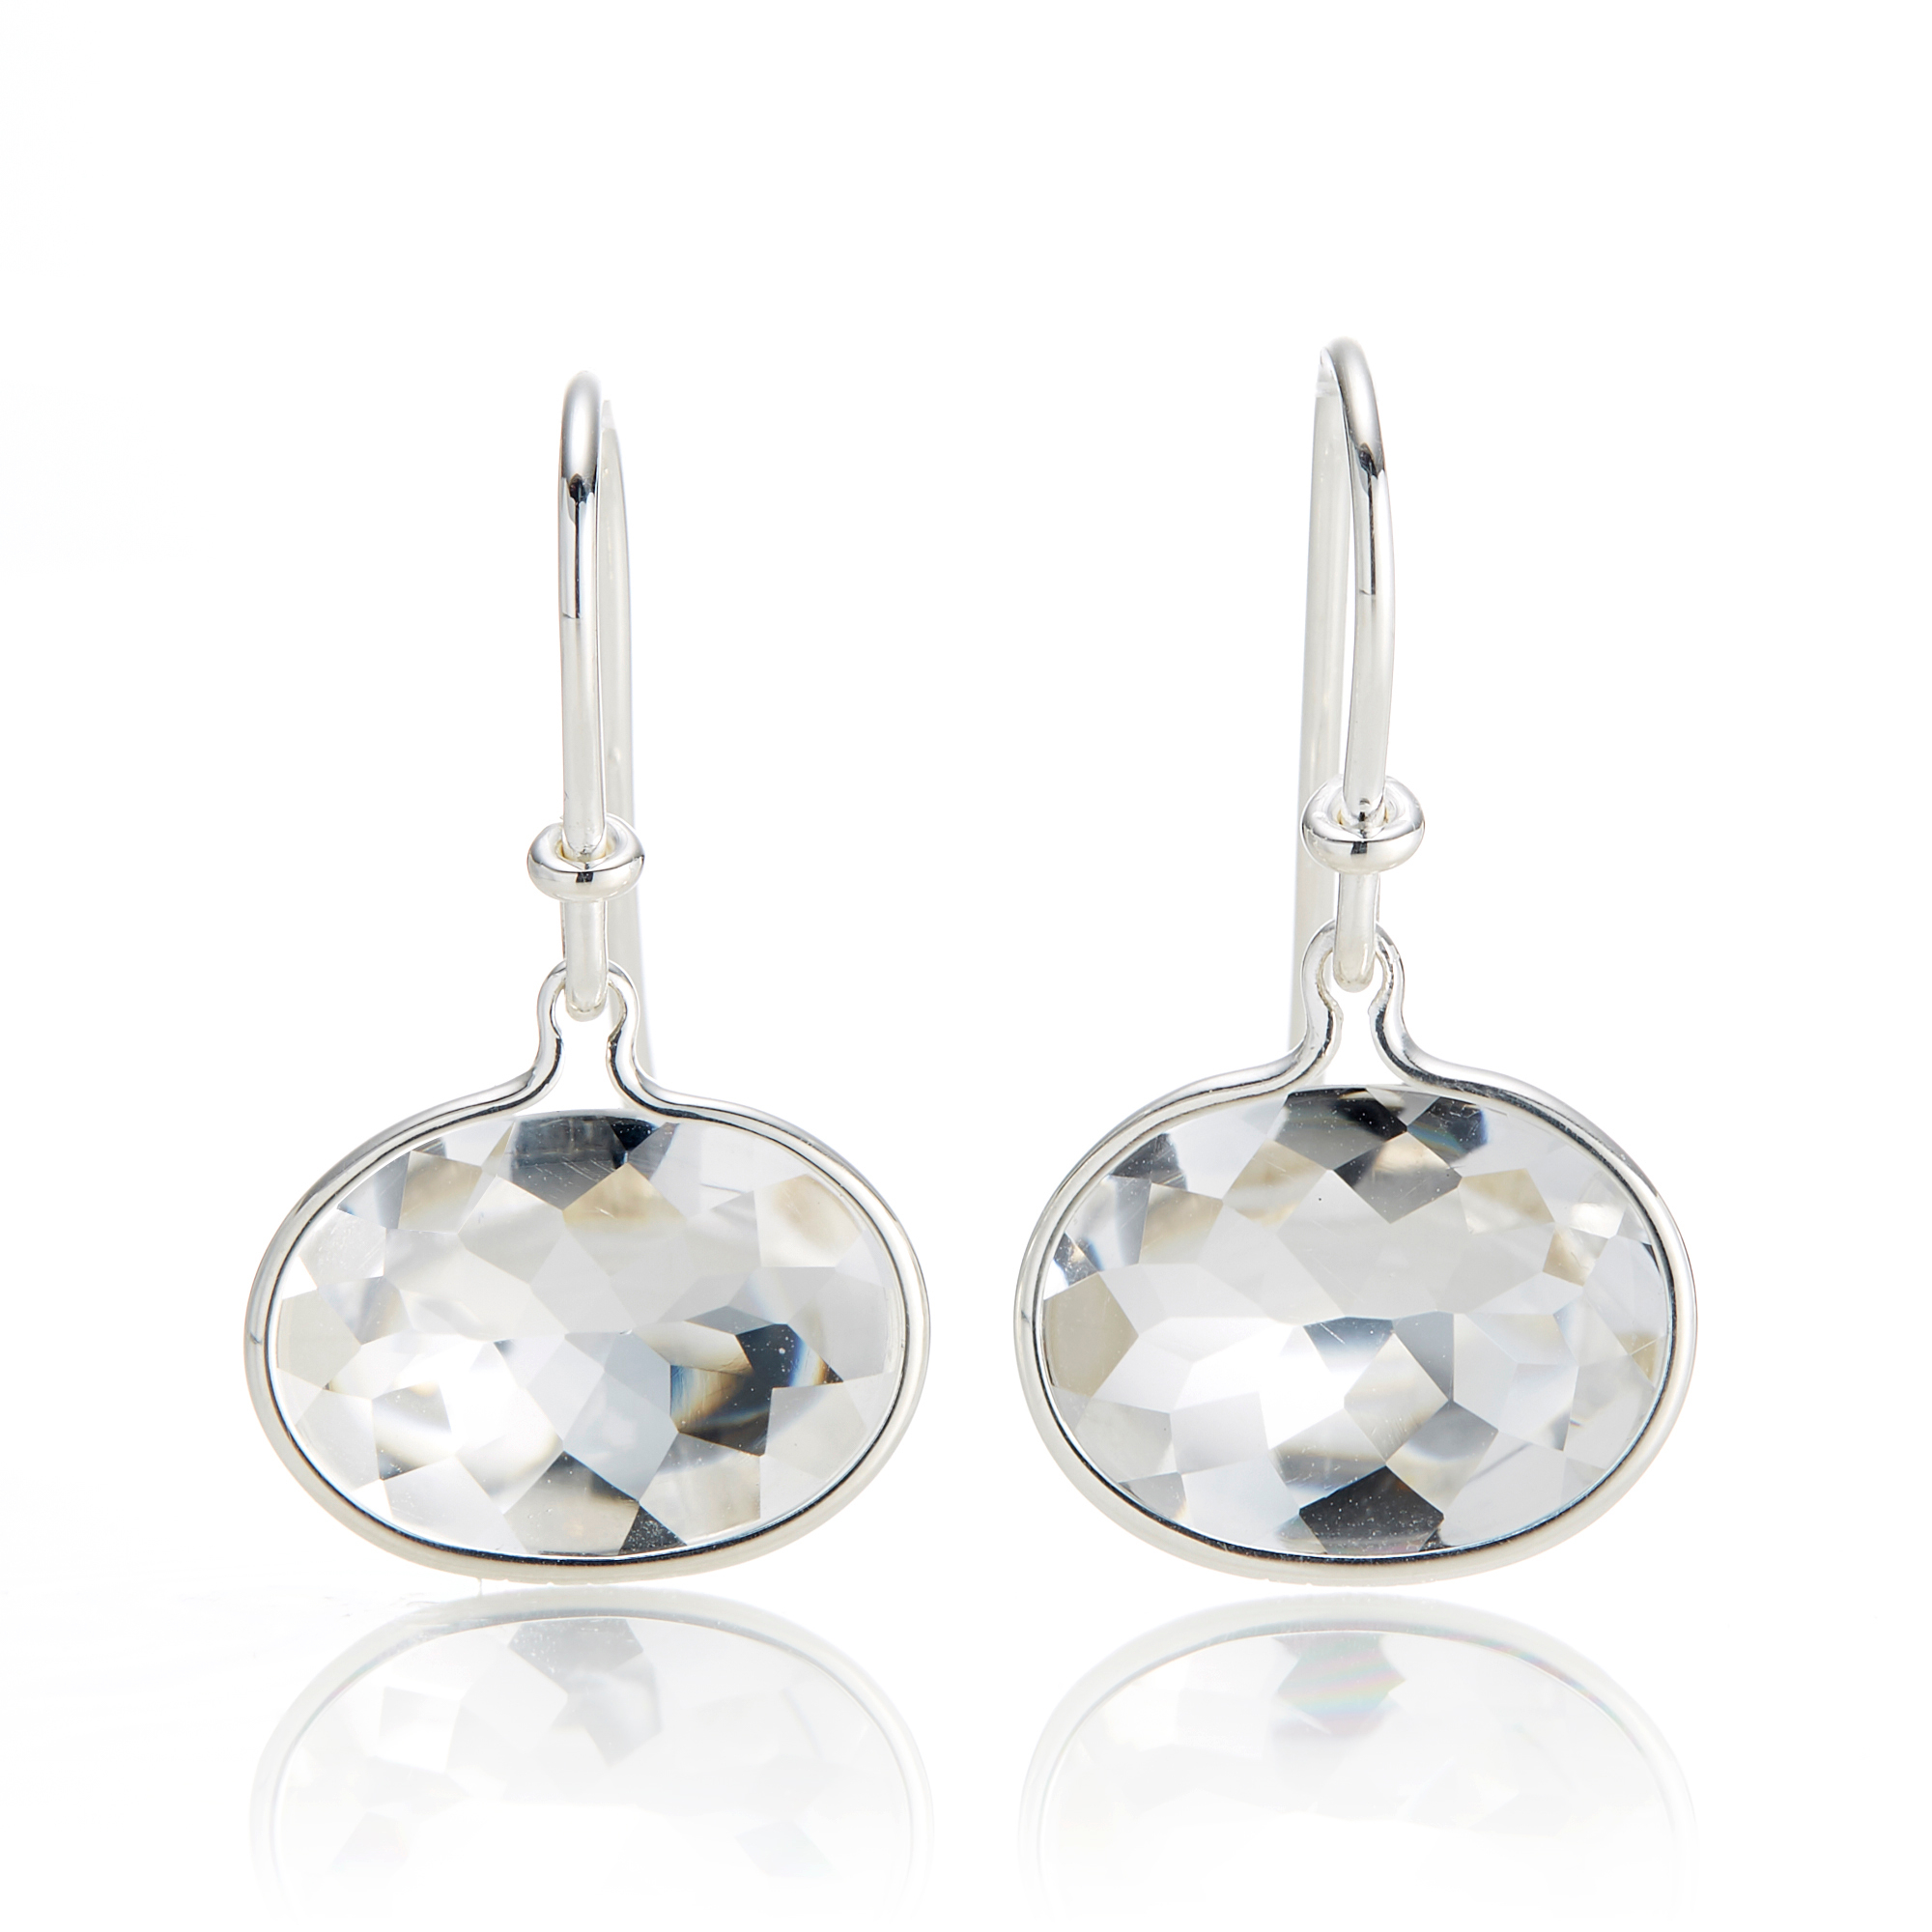 Georg Jensen Savannah Rock Crystal Sterling Silver Drop Earrings